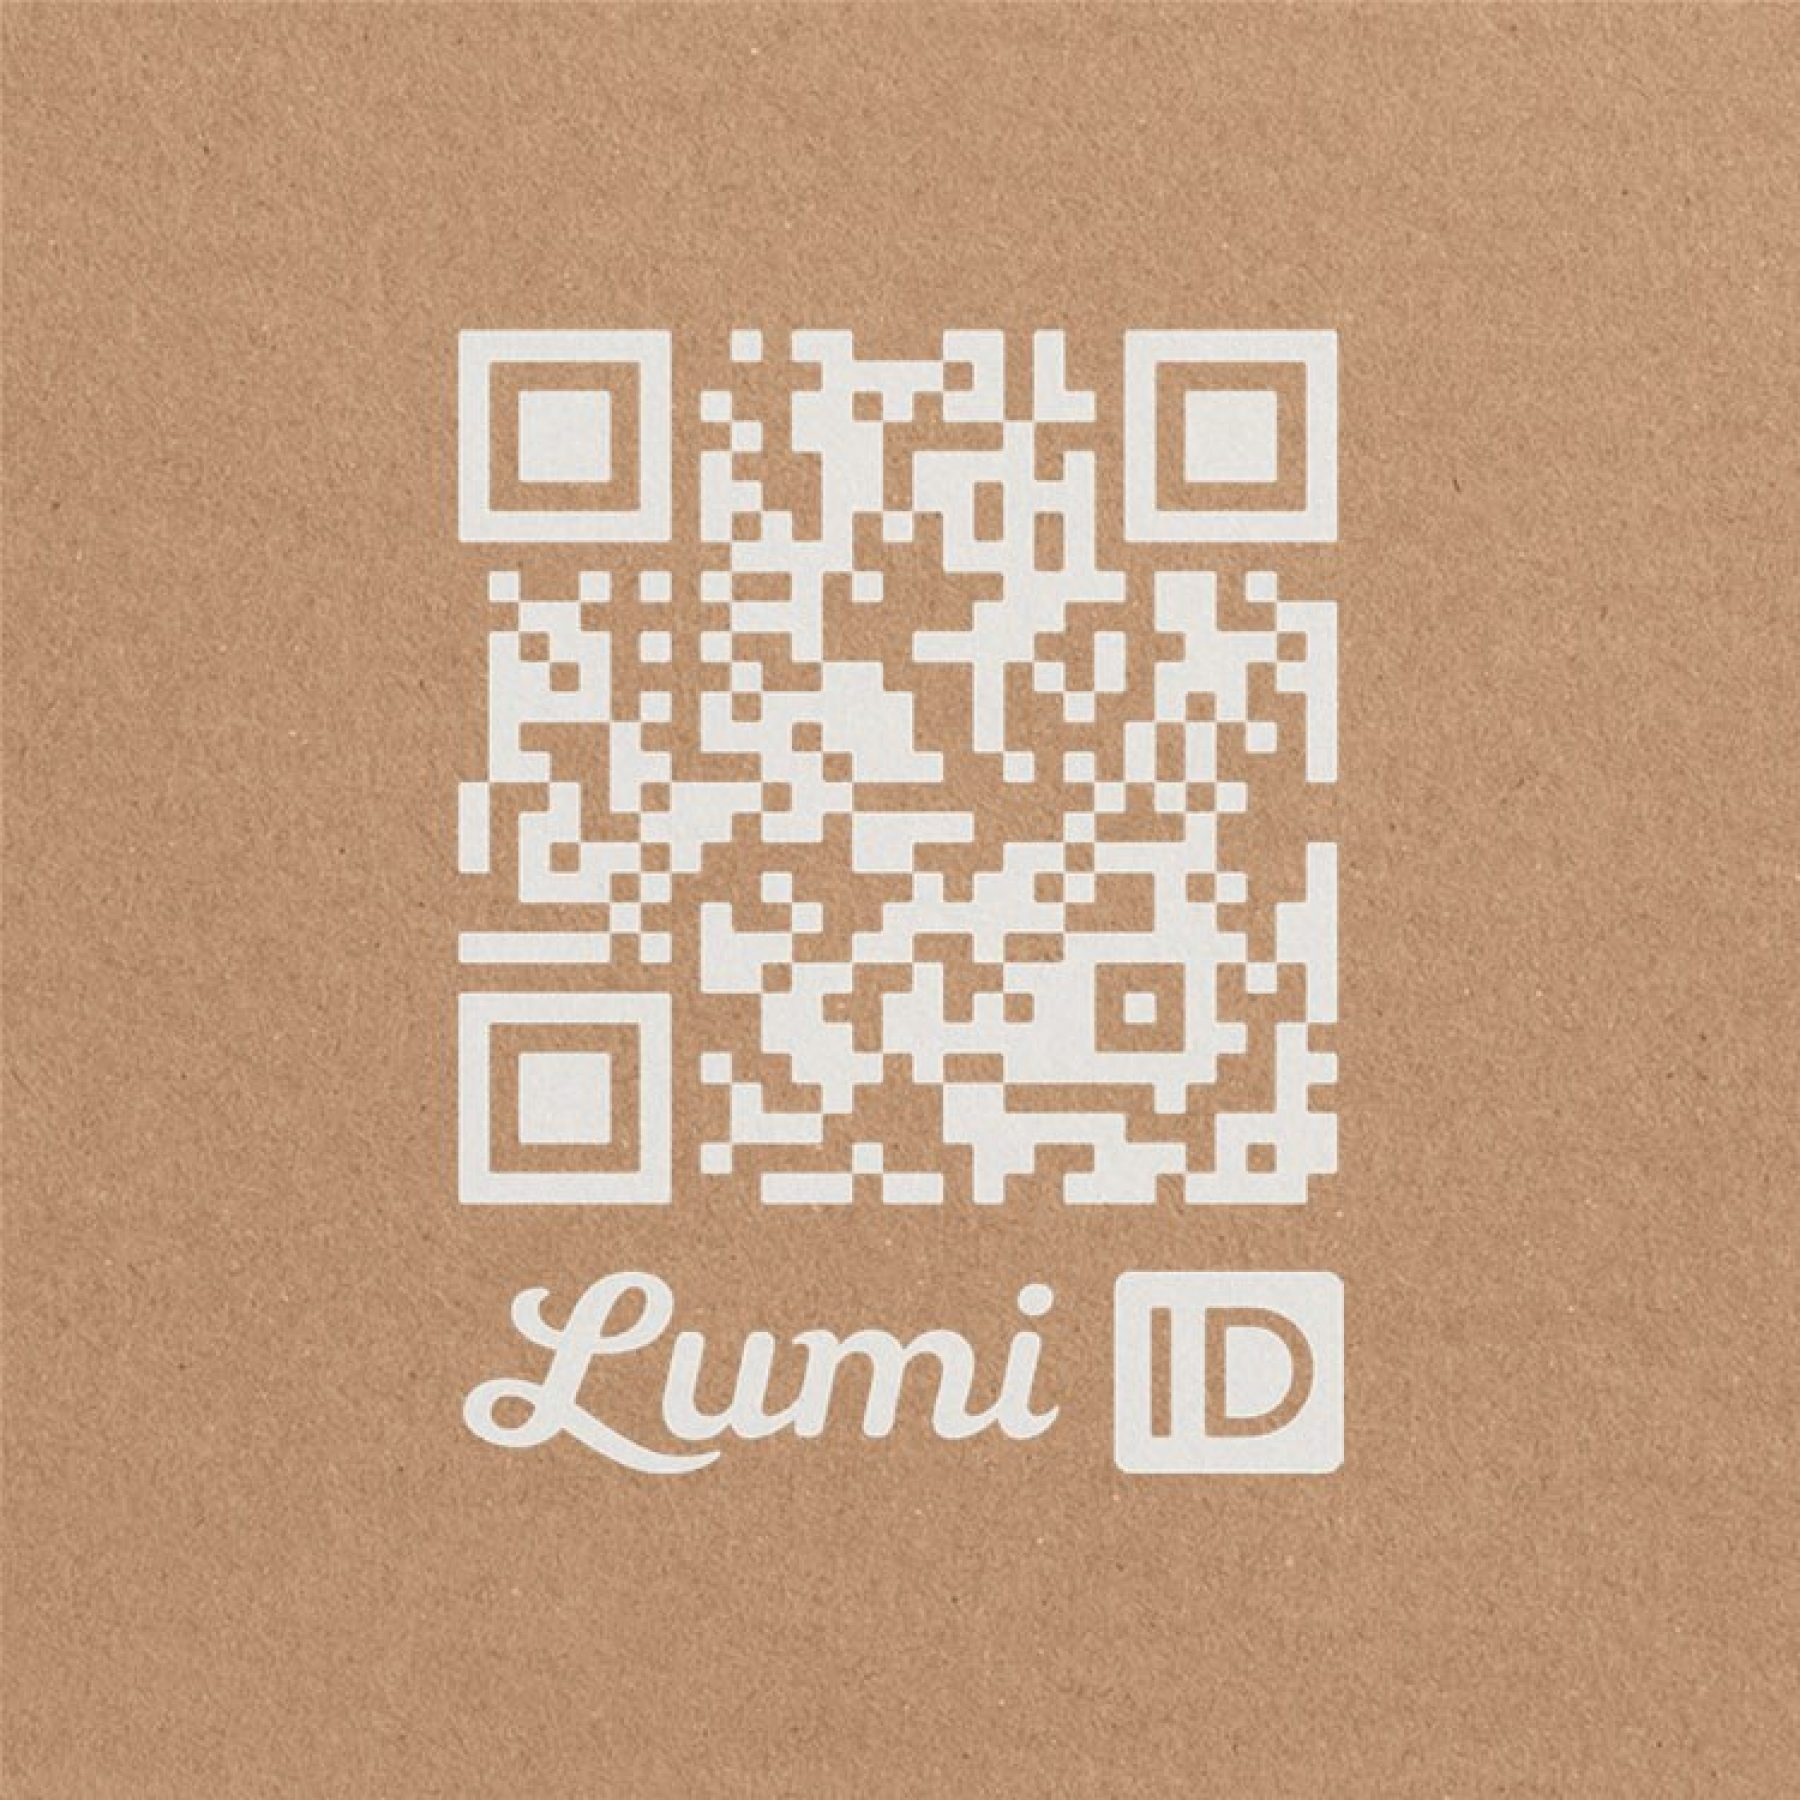 QR codes can be scanned with any smartphone using your native camera app. Try it out! Announcing Lumi ID: Making Packaging Transparency Accessible to All